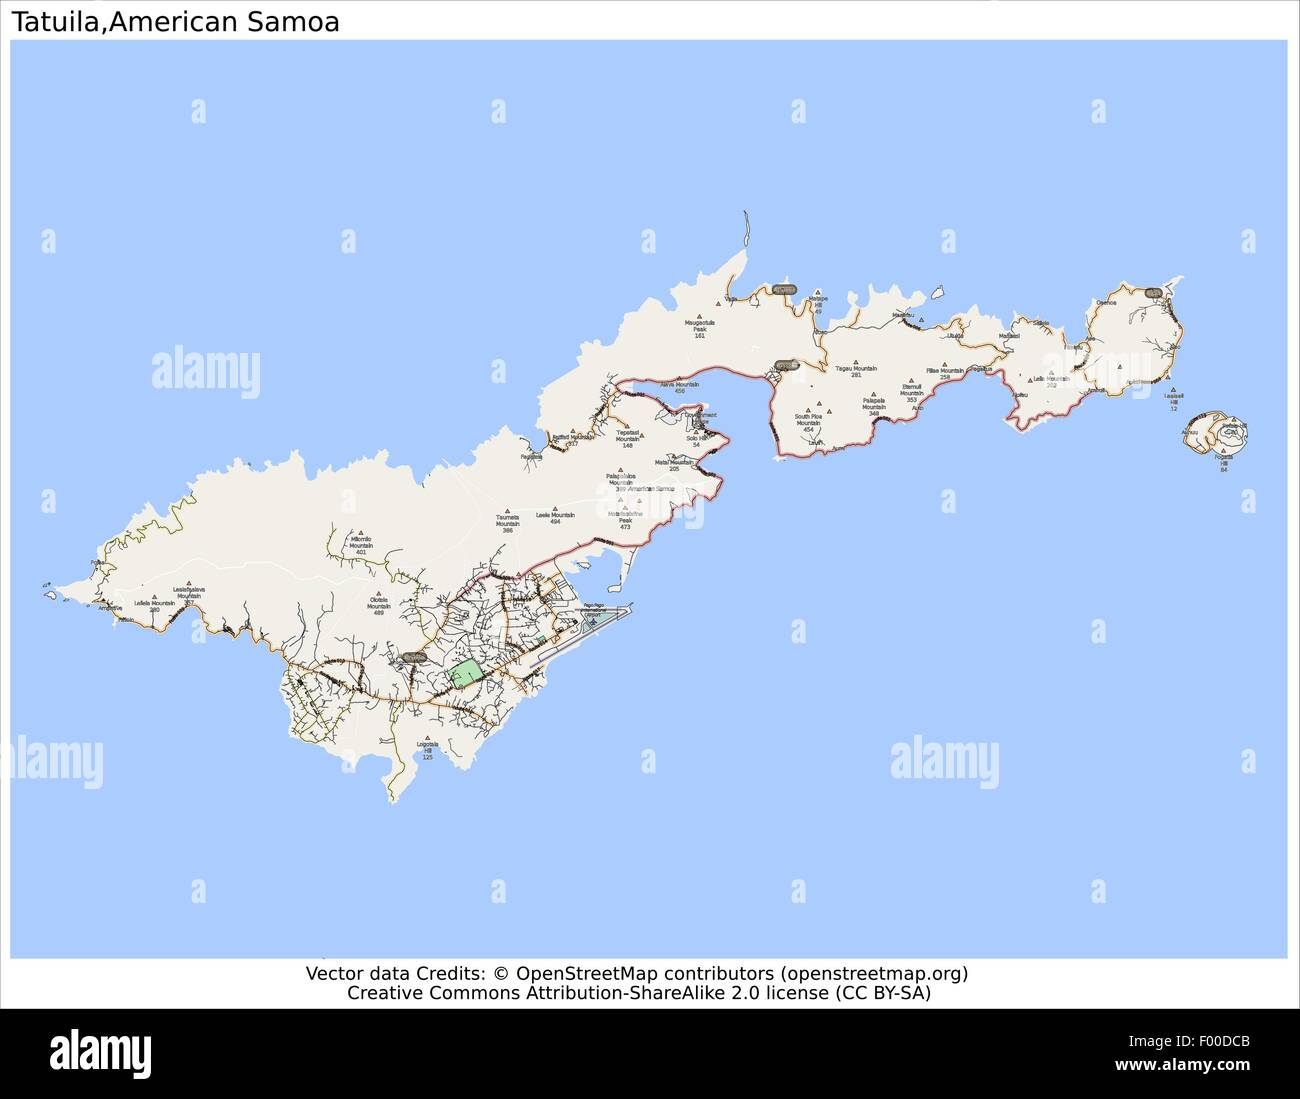 Tutuila American Samoa Country city island state location map Stock ...